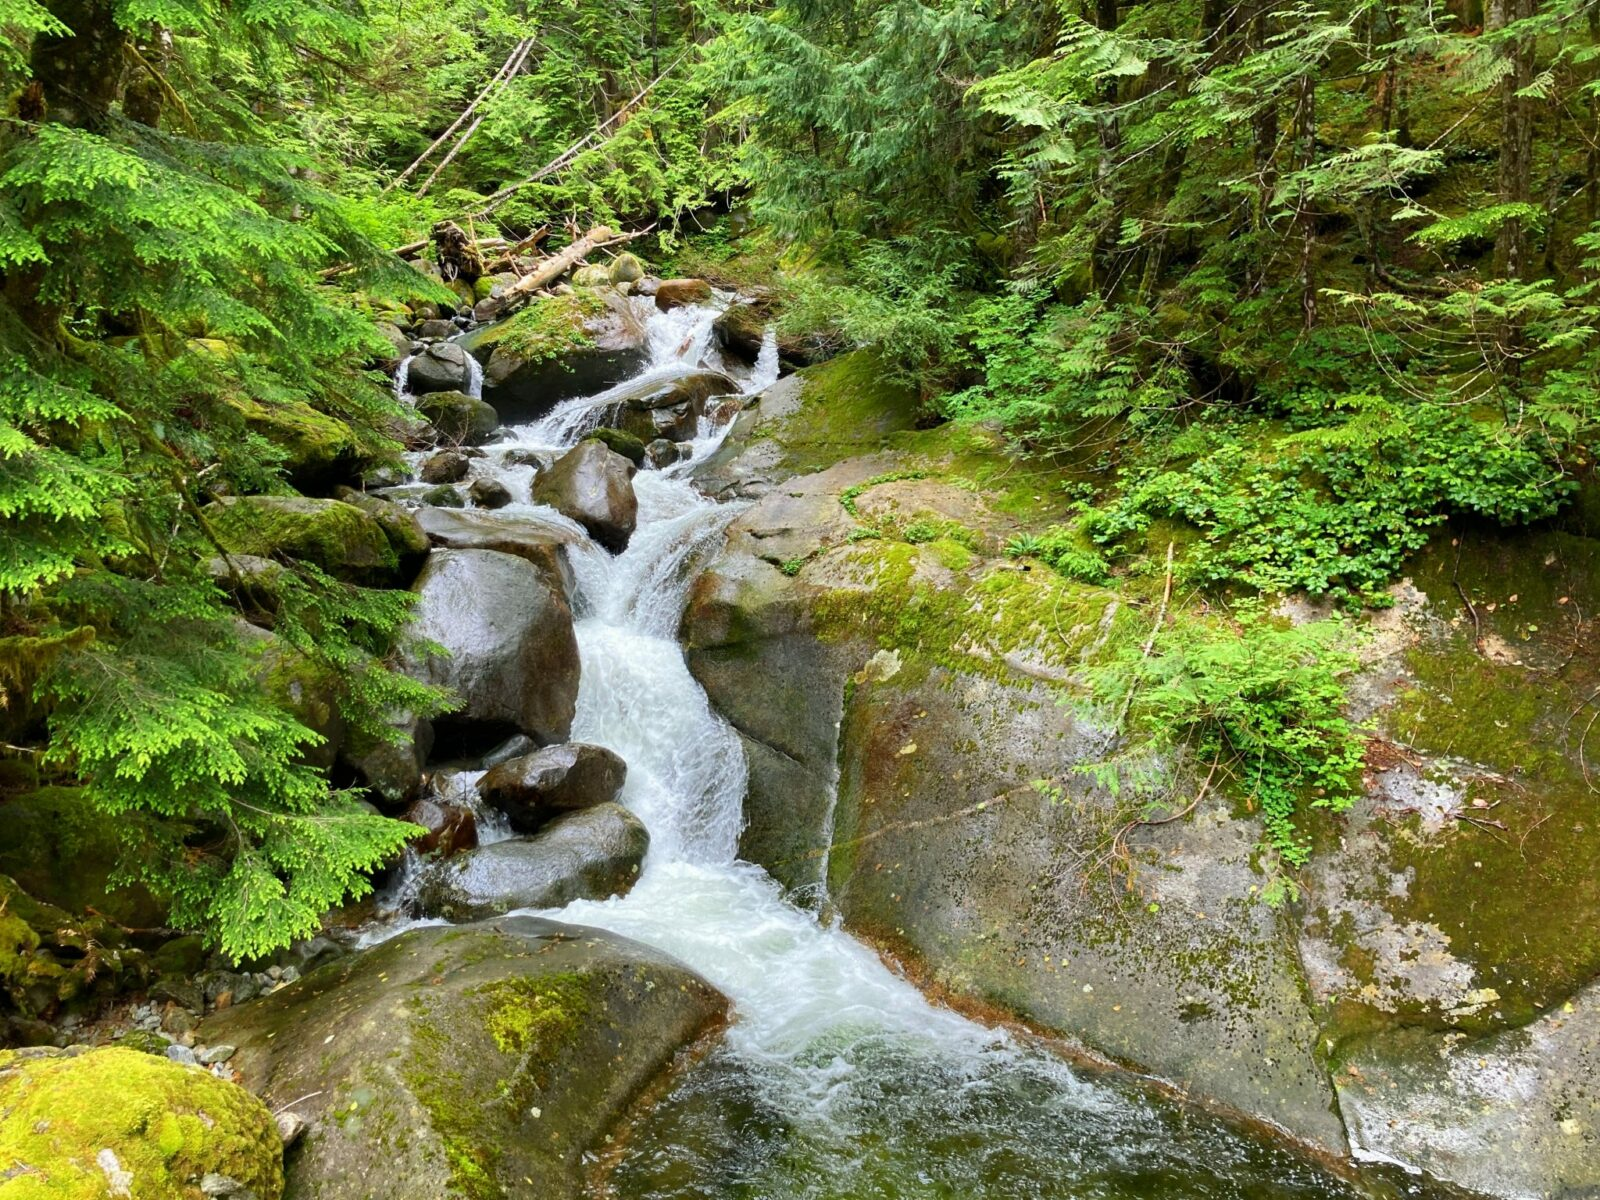 A mini waterfall over and between rocks and moss in an evergreen forest along the Snoqualmie Lake Trail to Otter Falls